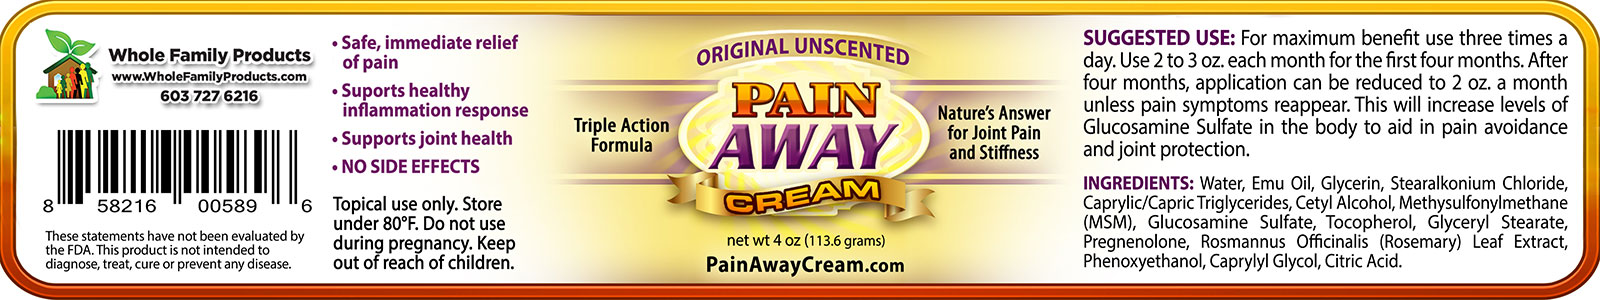 Pain Away Cream 4oz Jar Unscented Label